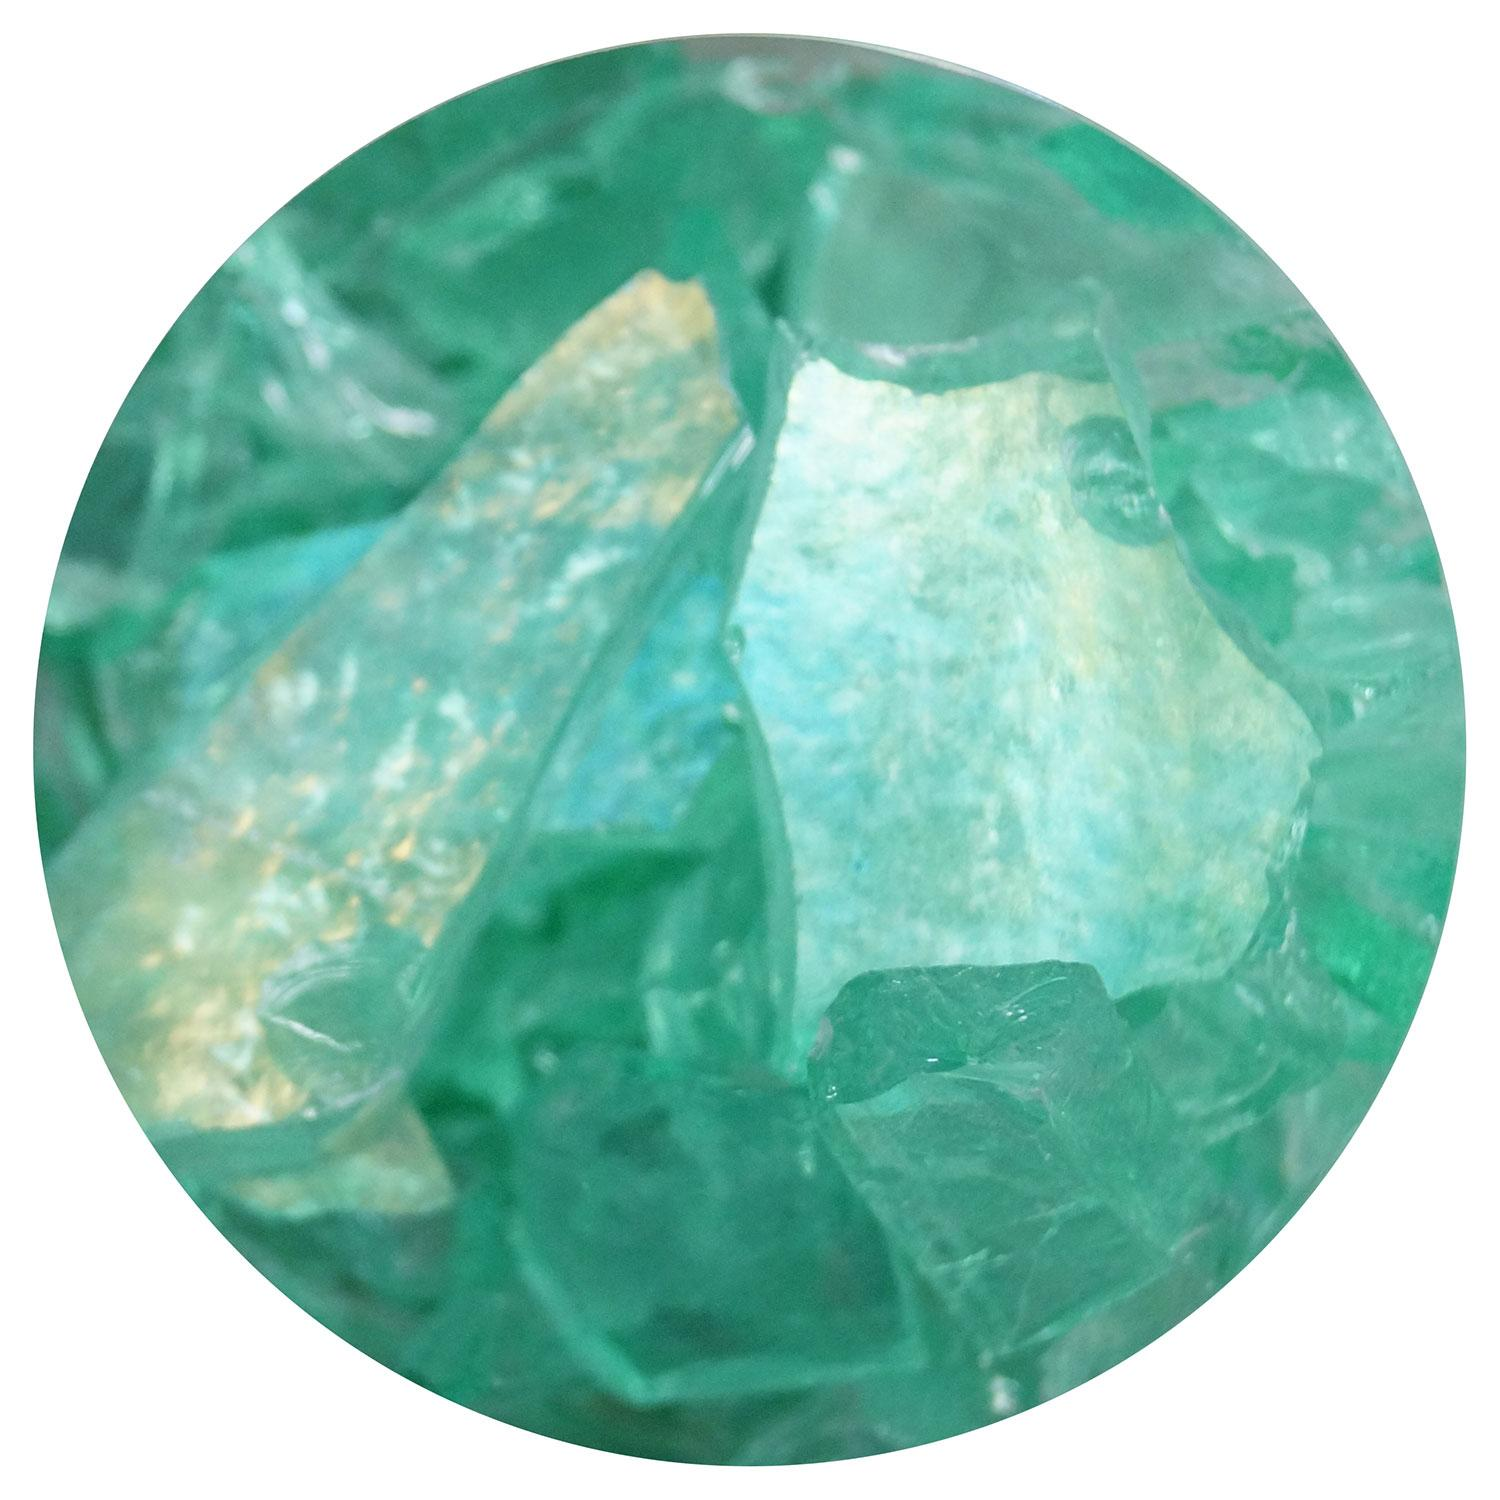 8.5 oz Ming Green Iridized Transparent Mosaic Frit - 96 COE